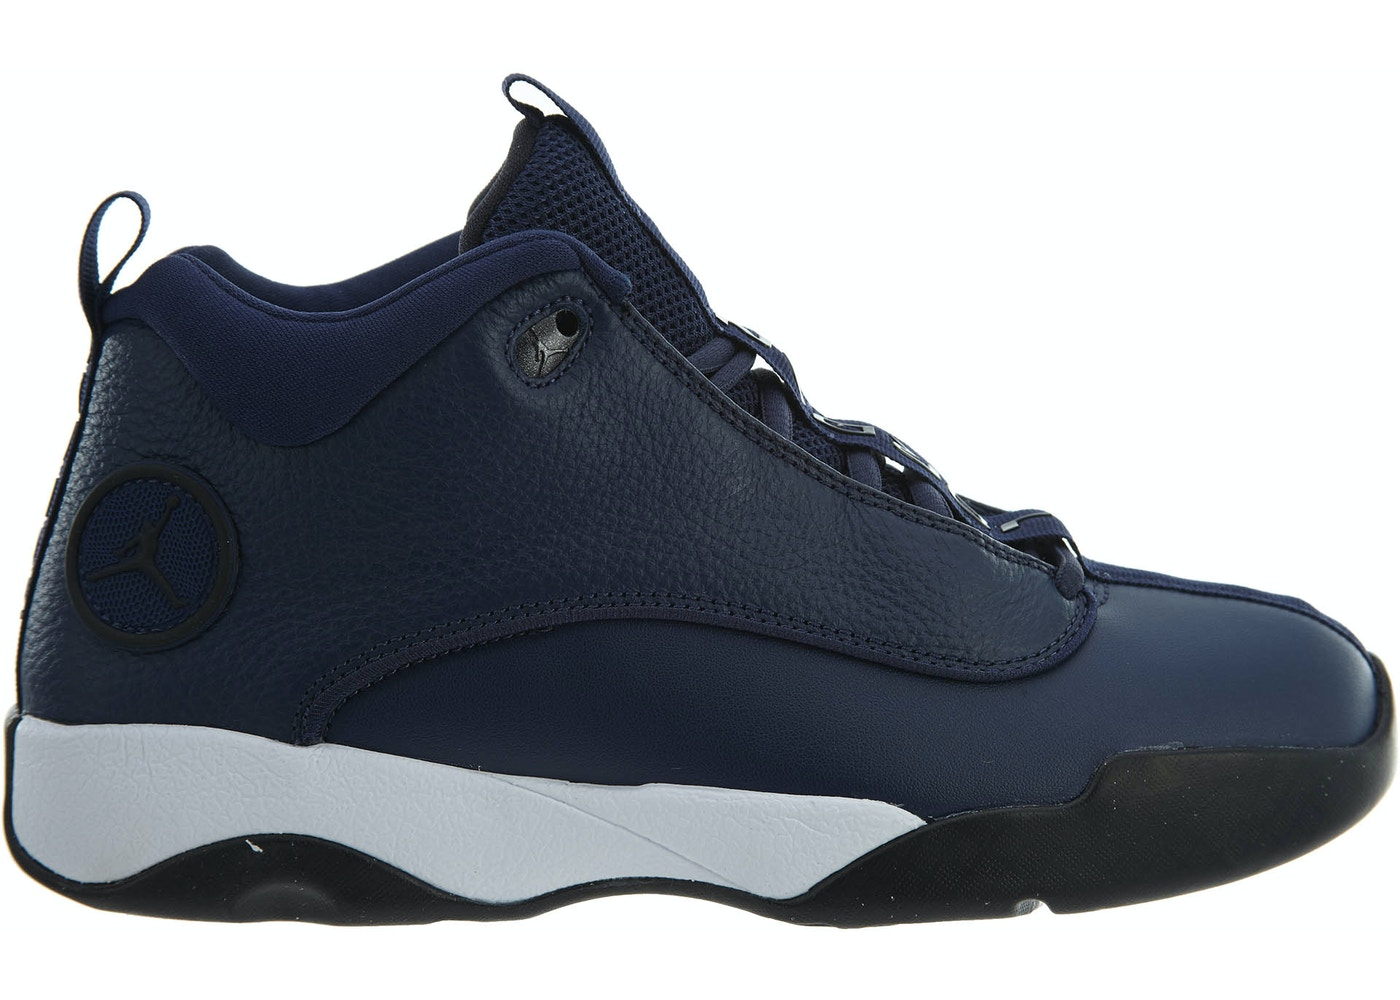 76ff5e35f9e218 Jordan Jumpman Pro Quick Midnight Navy Black-White - 932687-401